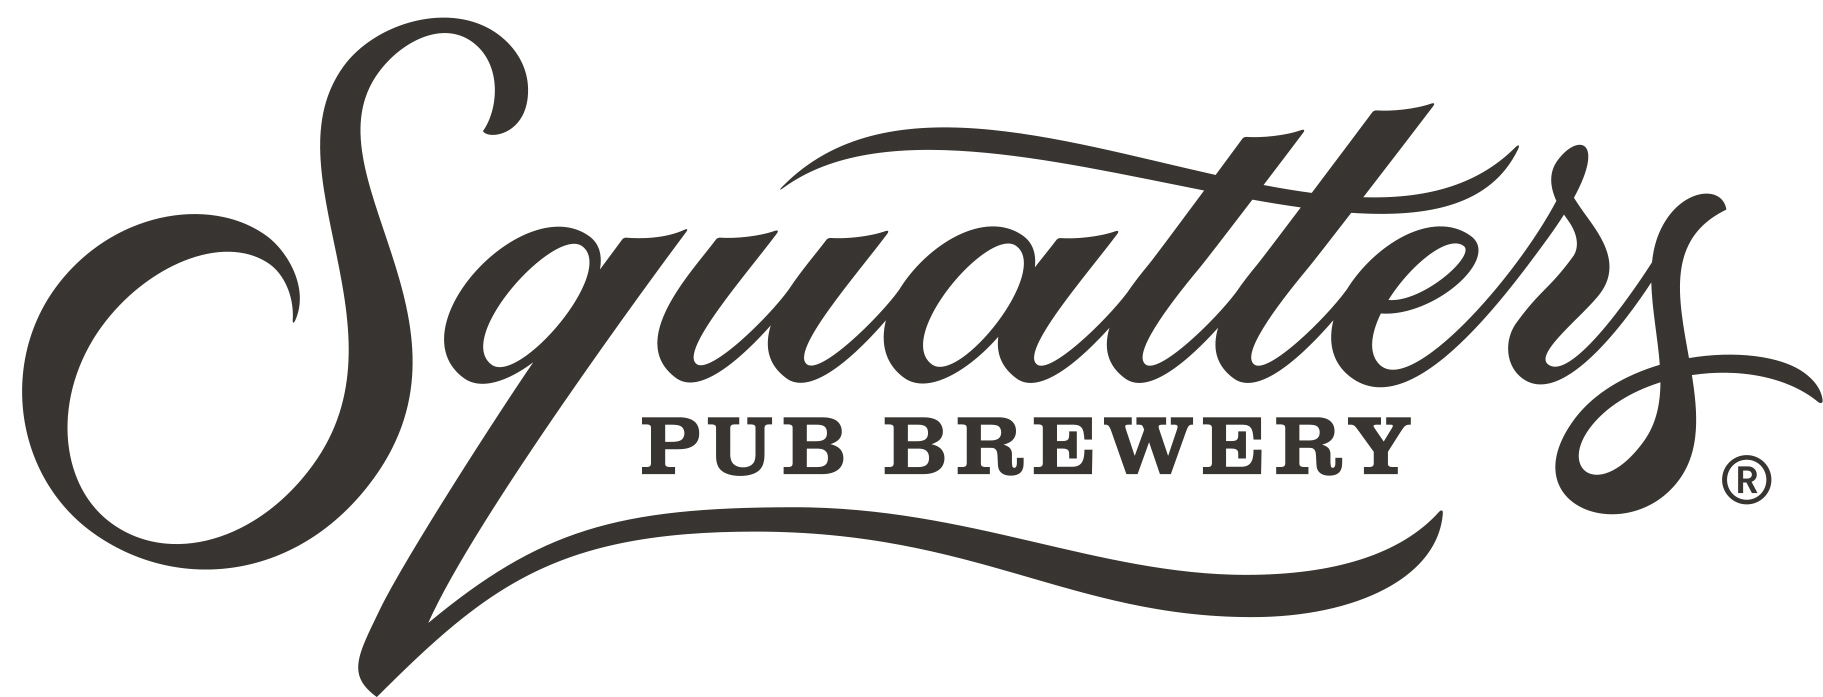 Squatters Pub Brewery.jpg